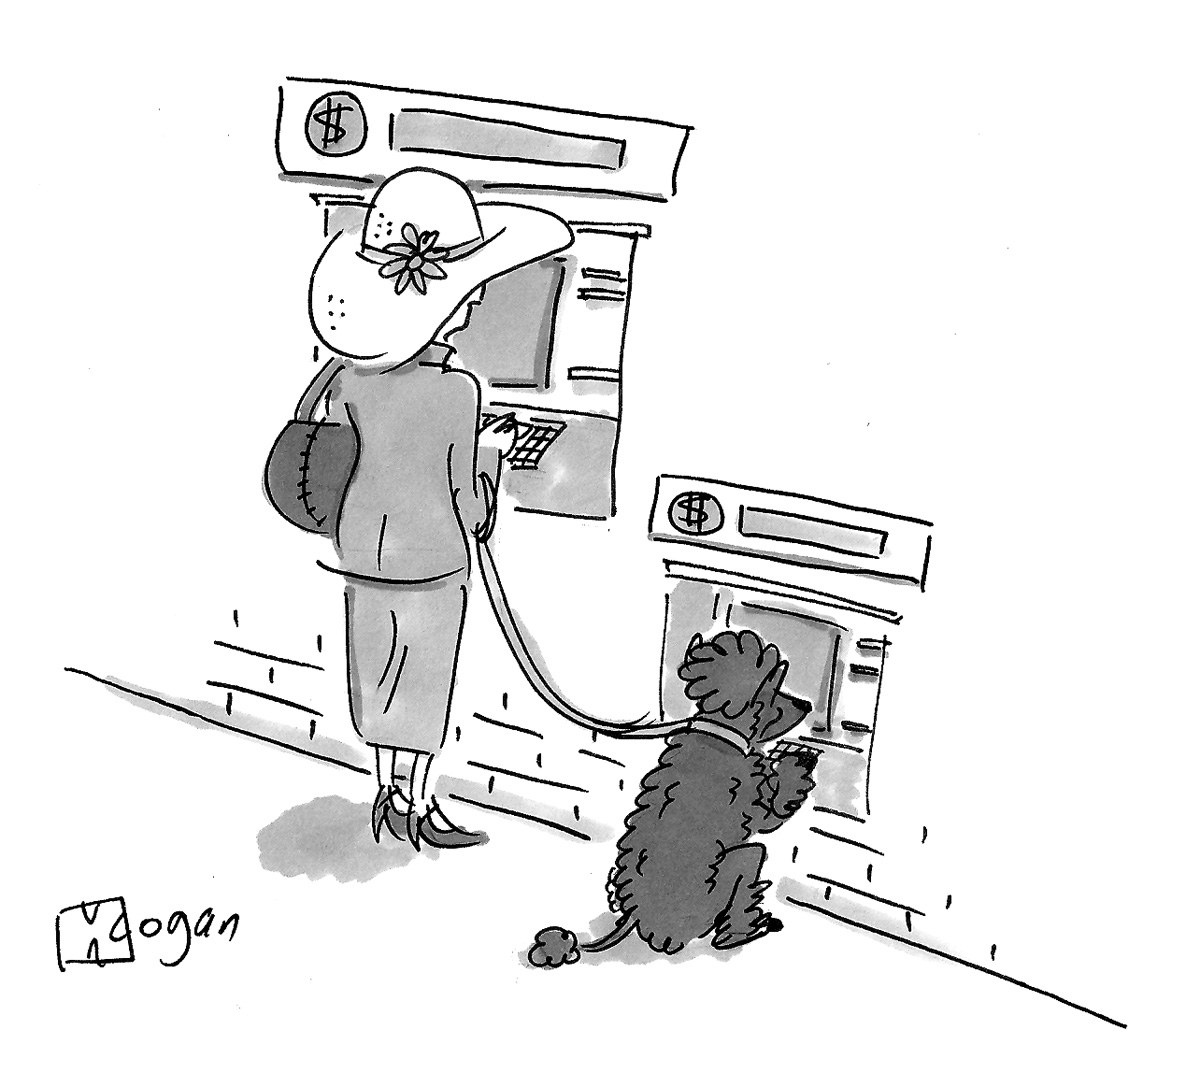 (A dog uses an ATM alongside its owner.)